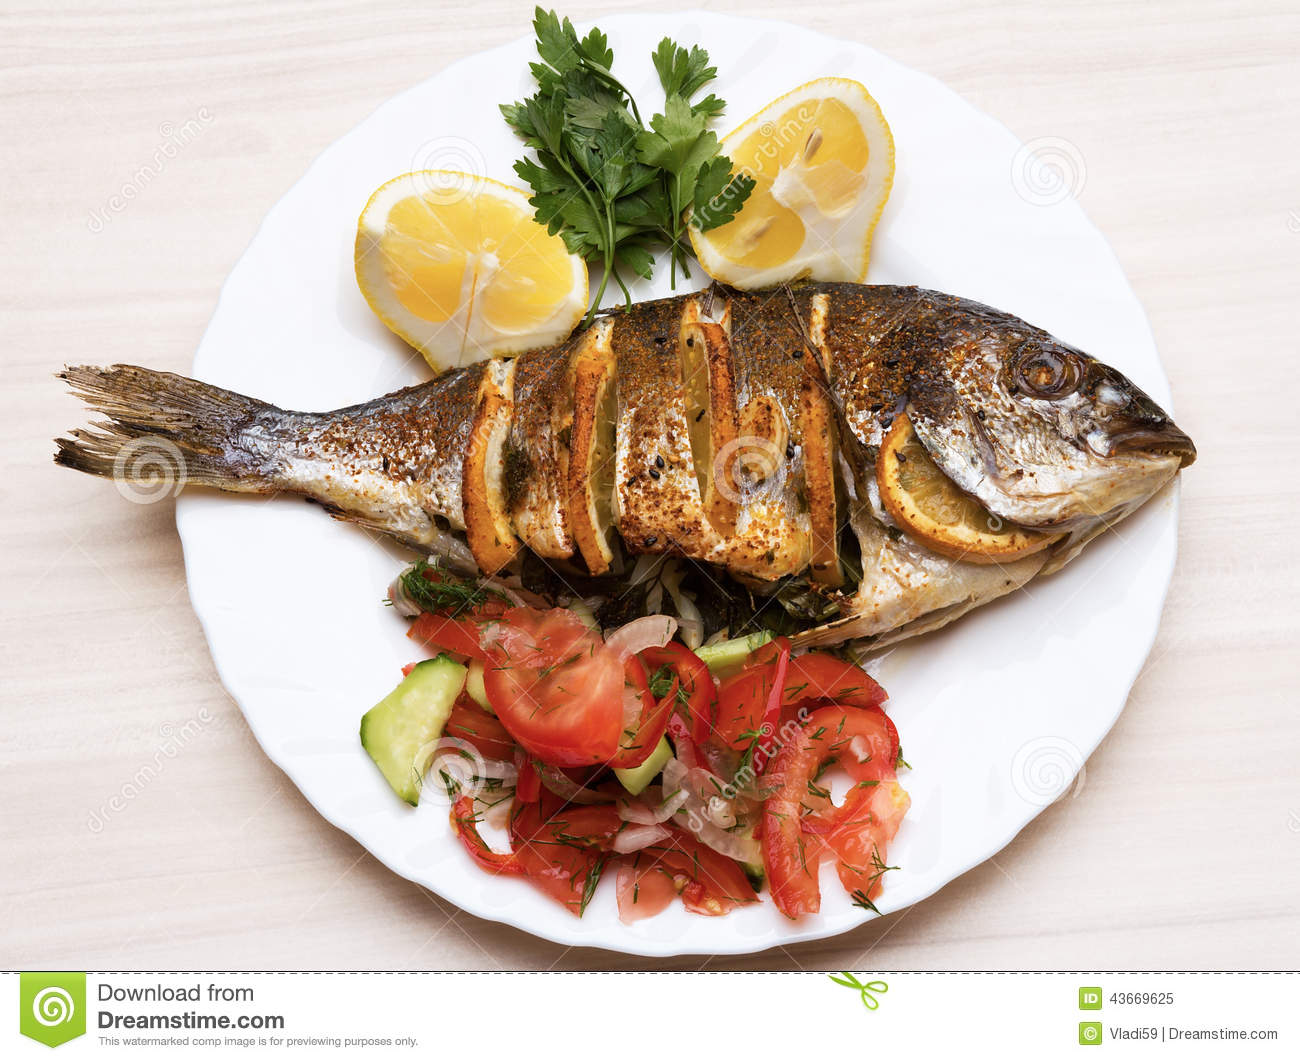 43669625 for Dreaming of eating fish